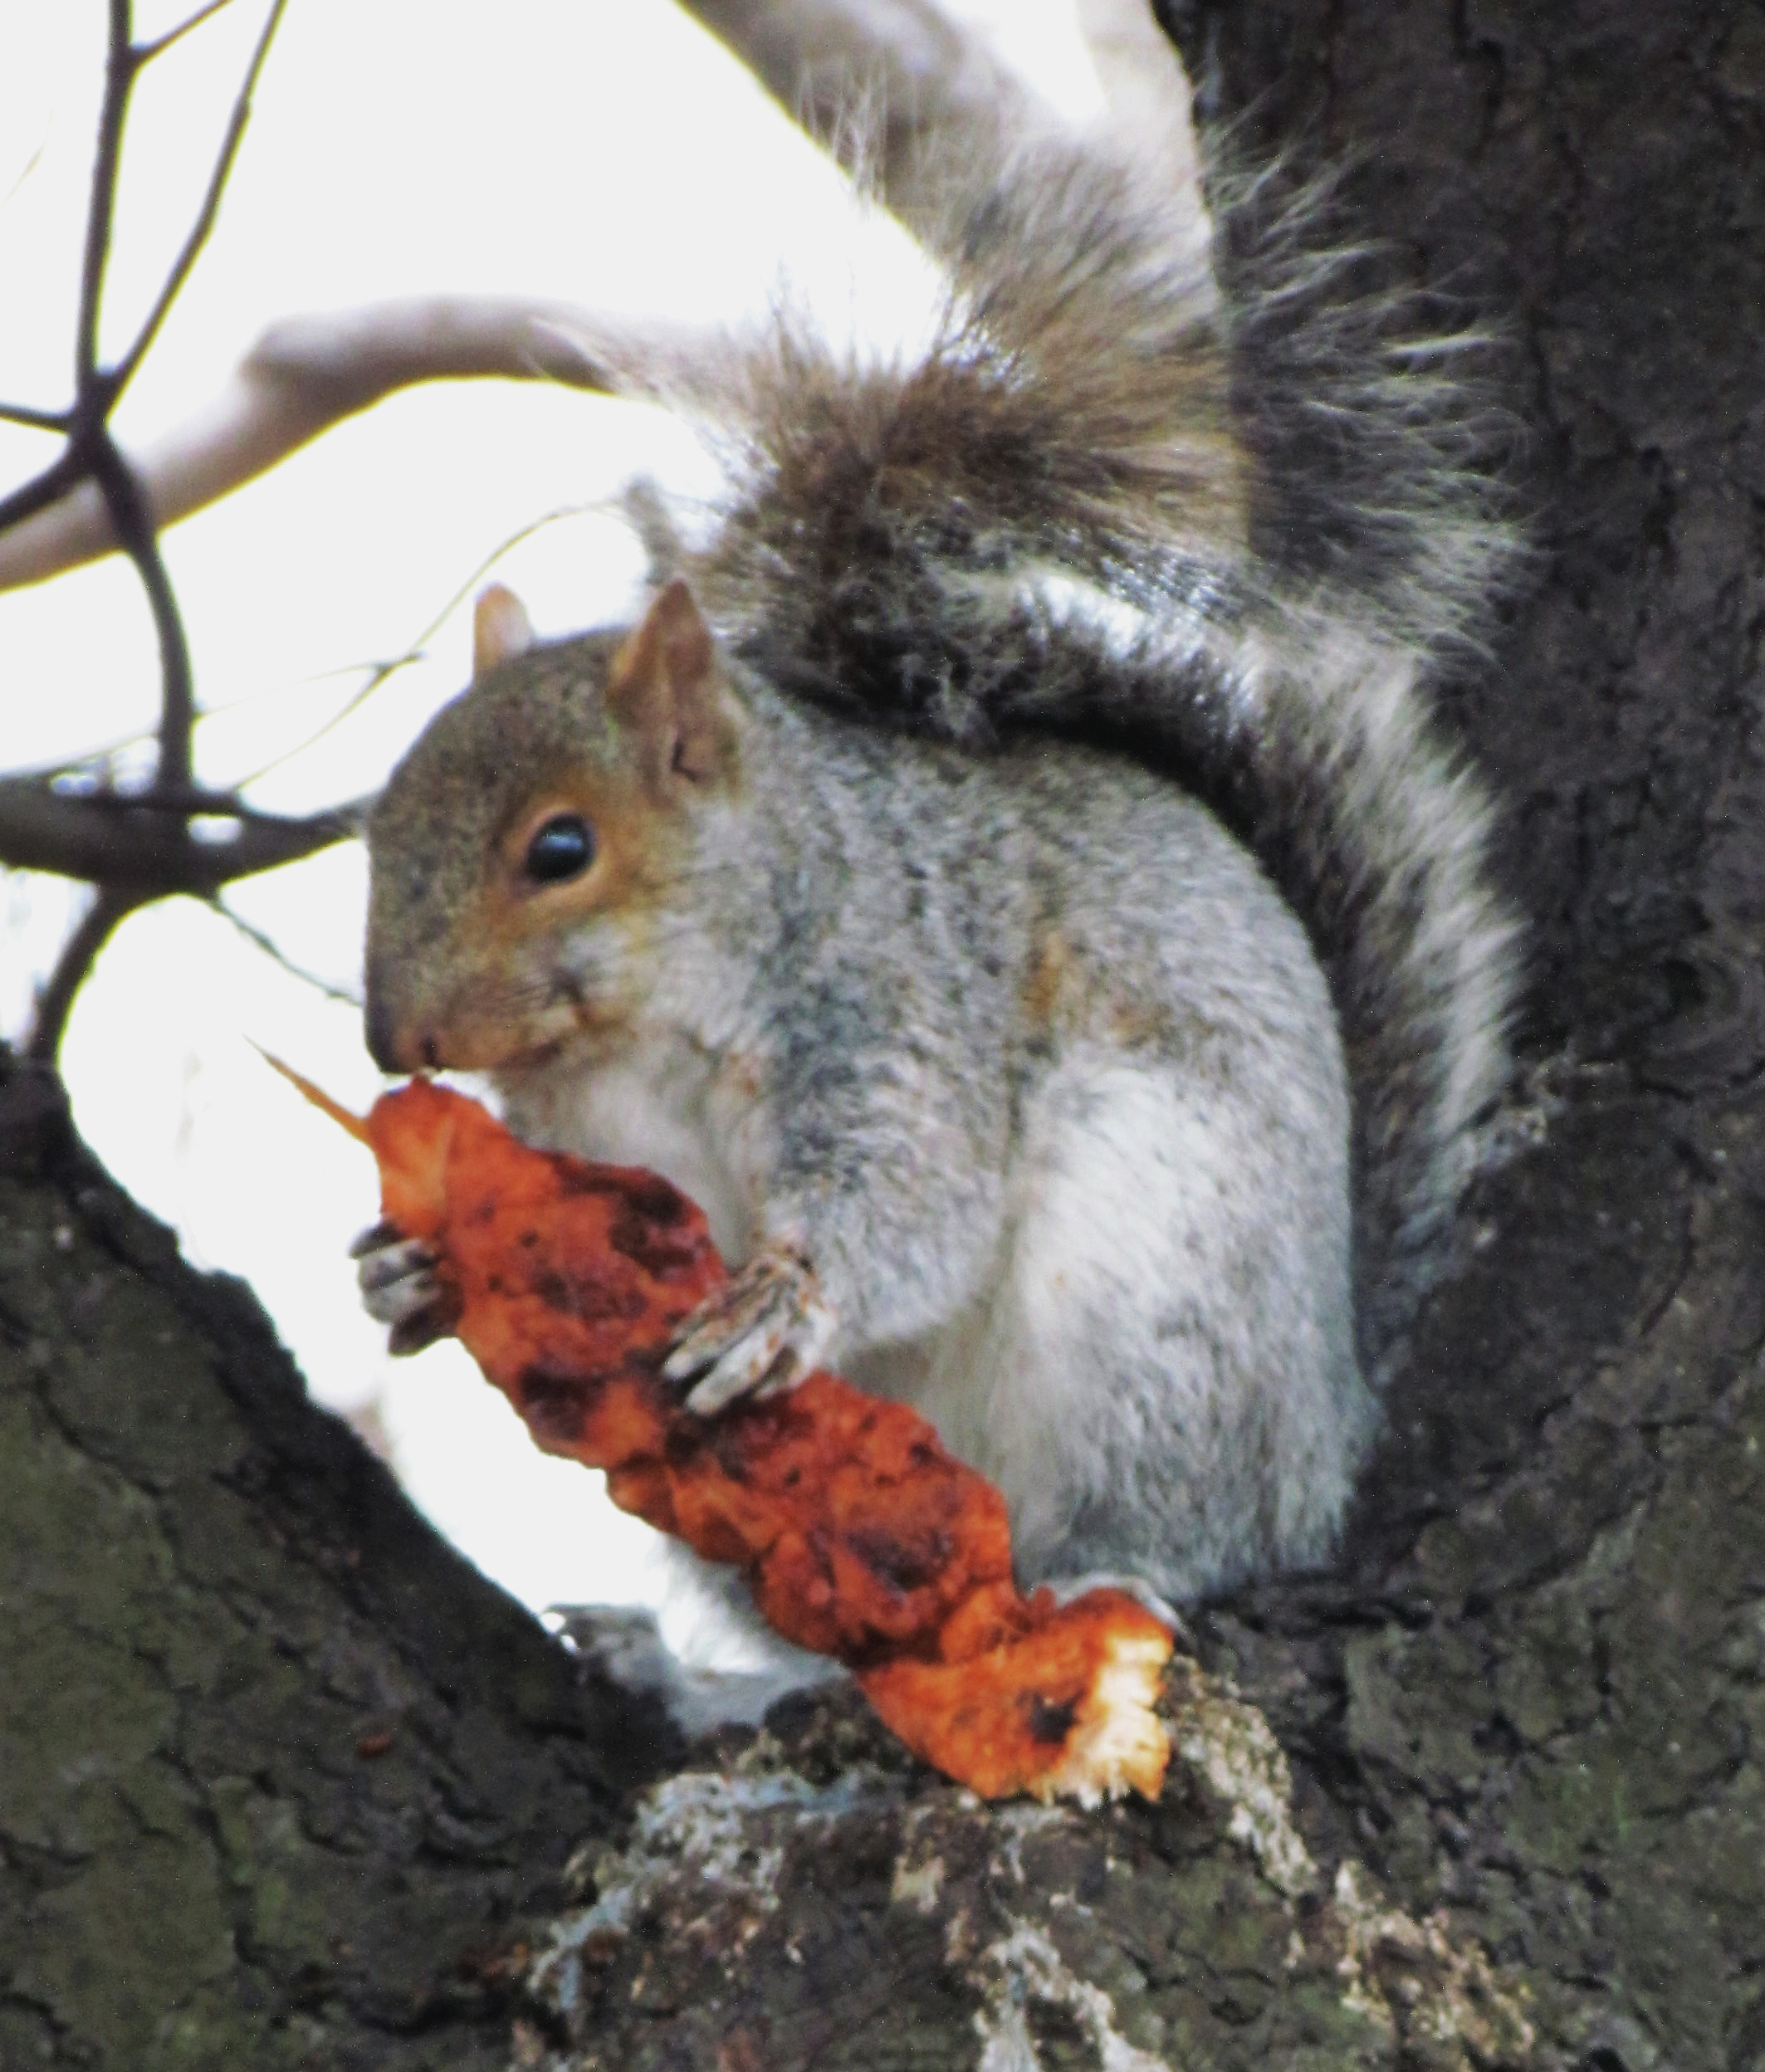 Philly Squirrel Having Sunday Brunch